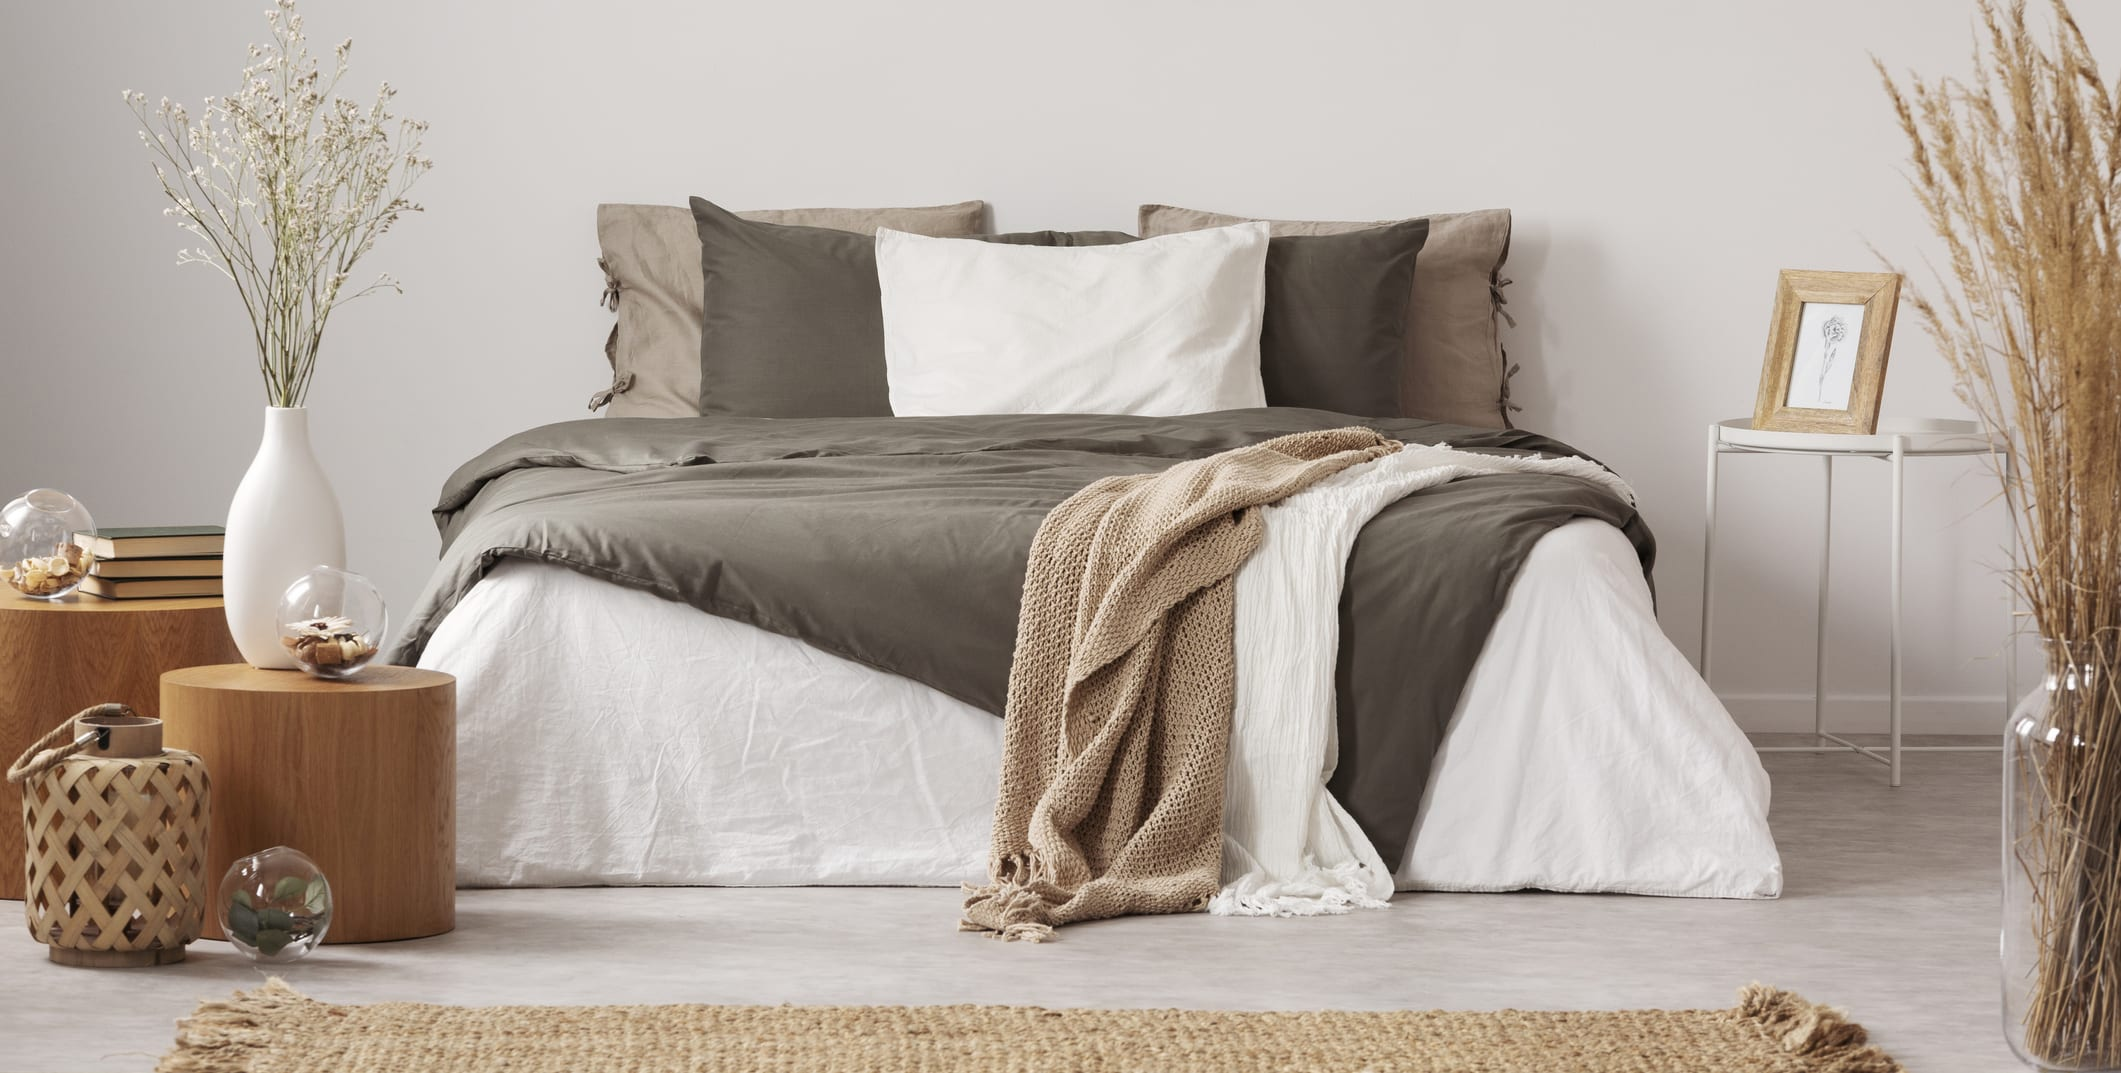 Why Cotton Sheets are King (and Queen) in the Bedroom